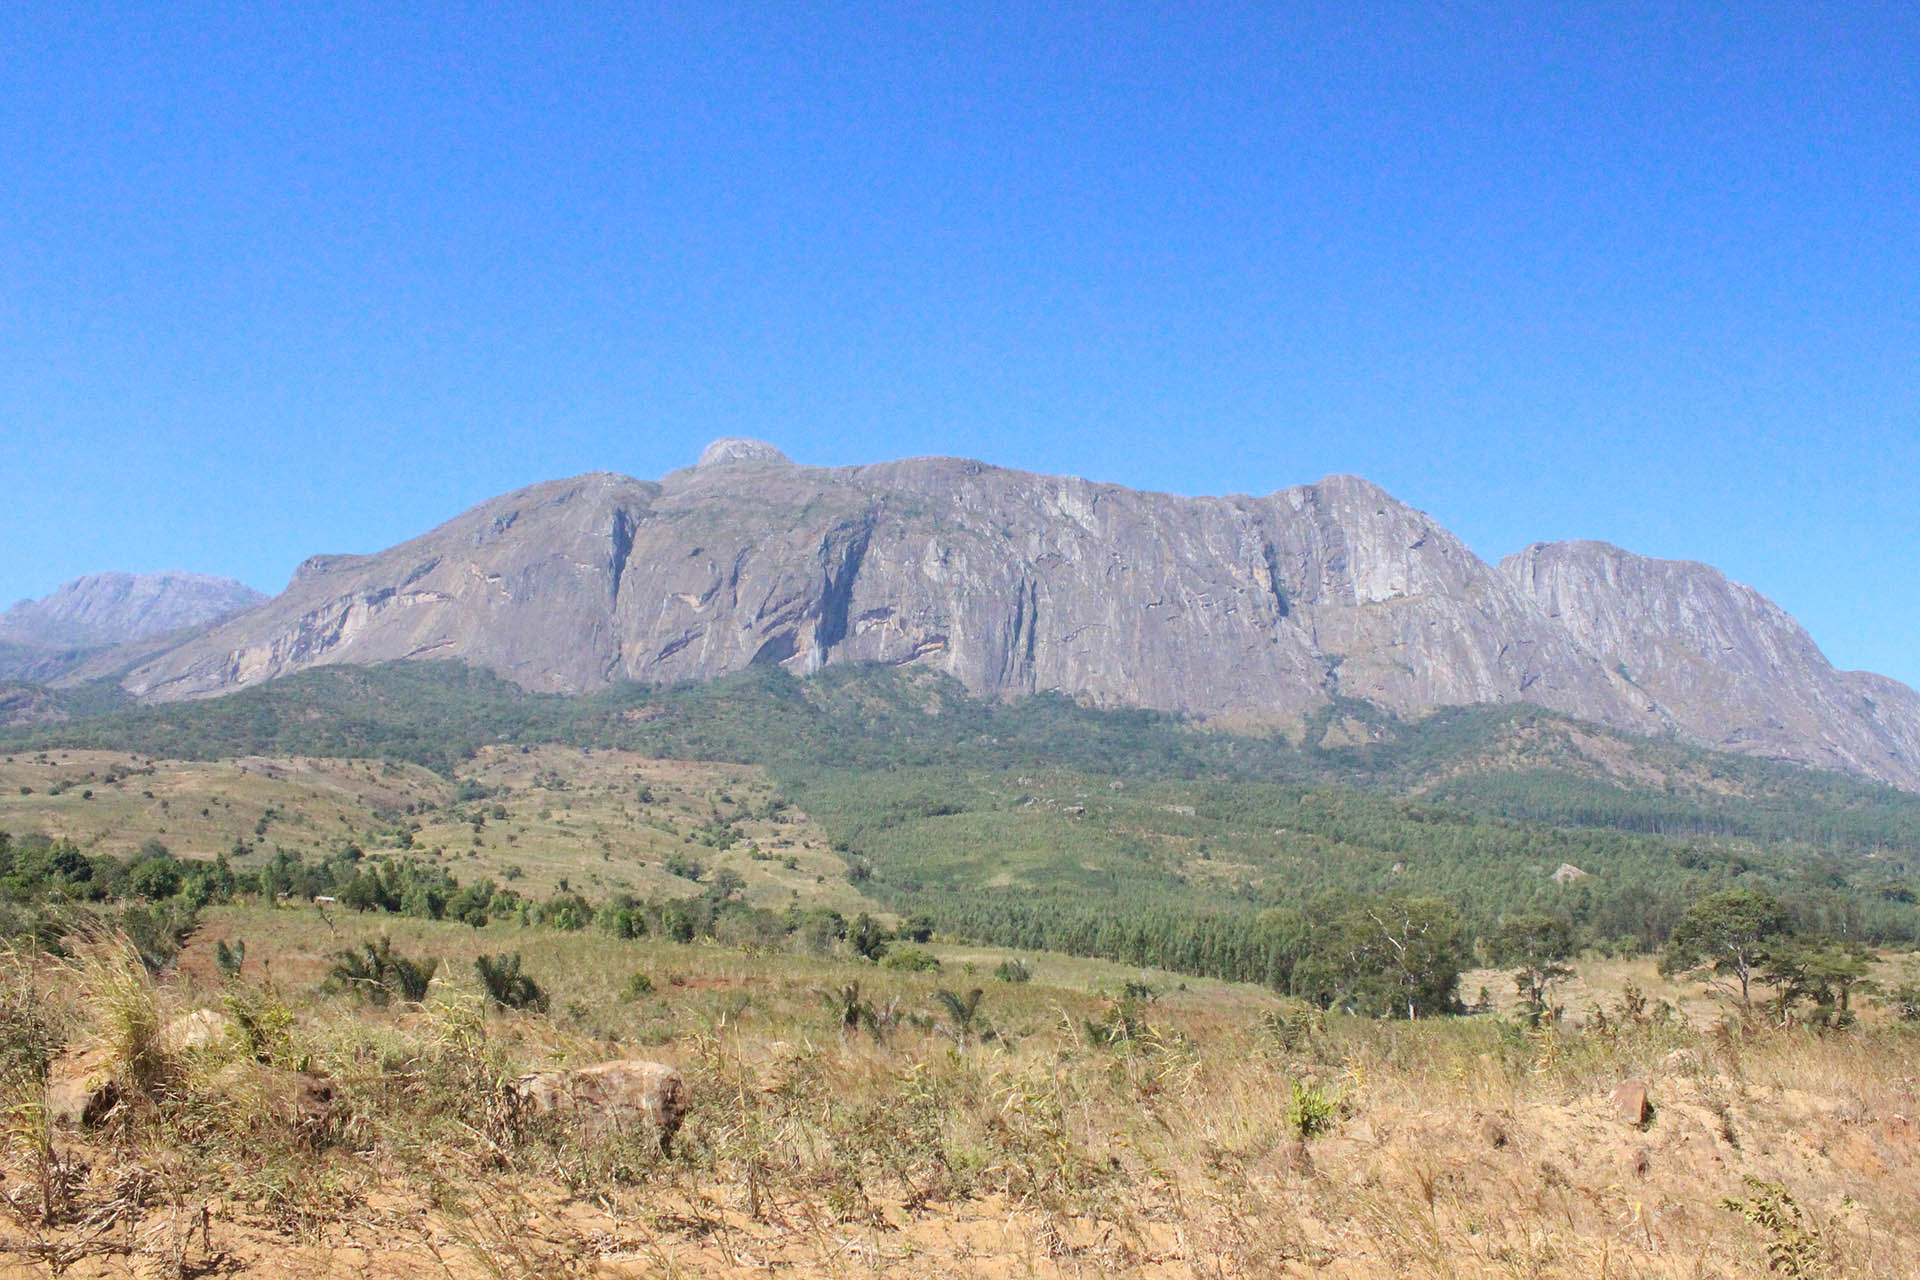 malawi points of interest mount-mulanje-malawian-style-malawi-adventures-experiences-specialist-tour-operator-mountains